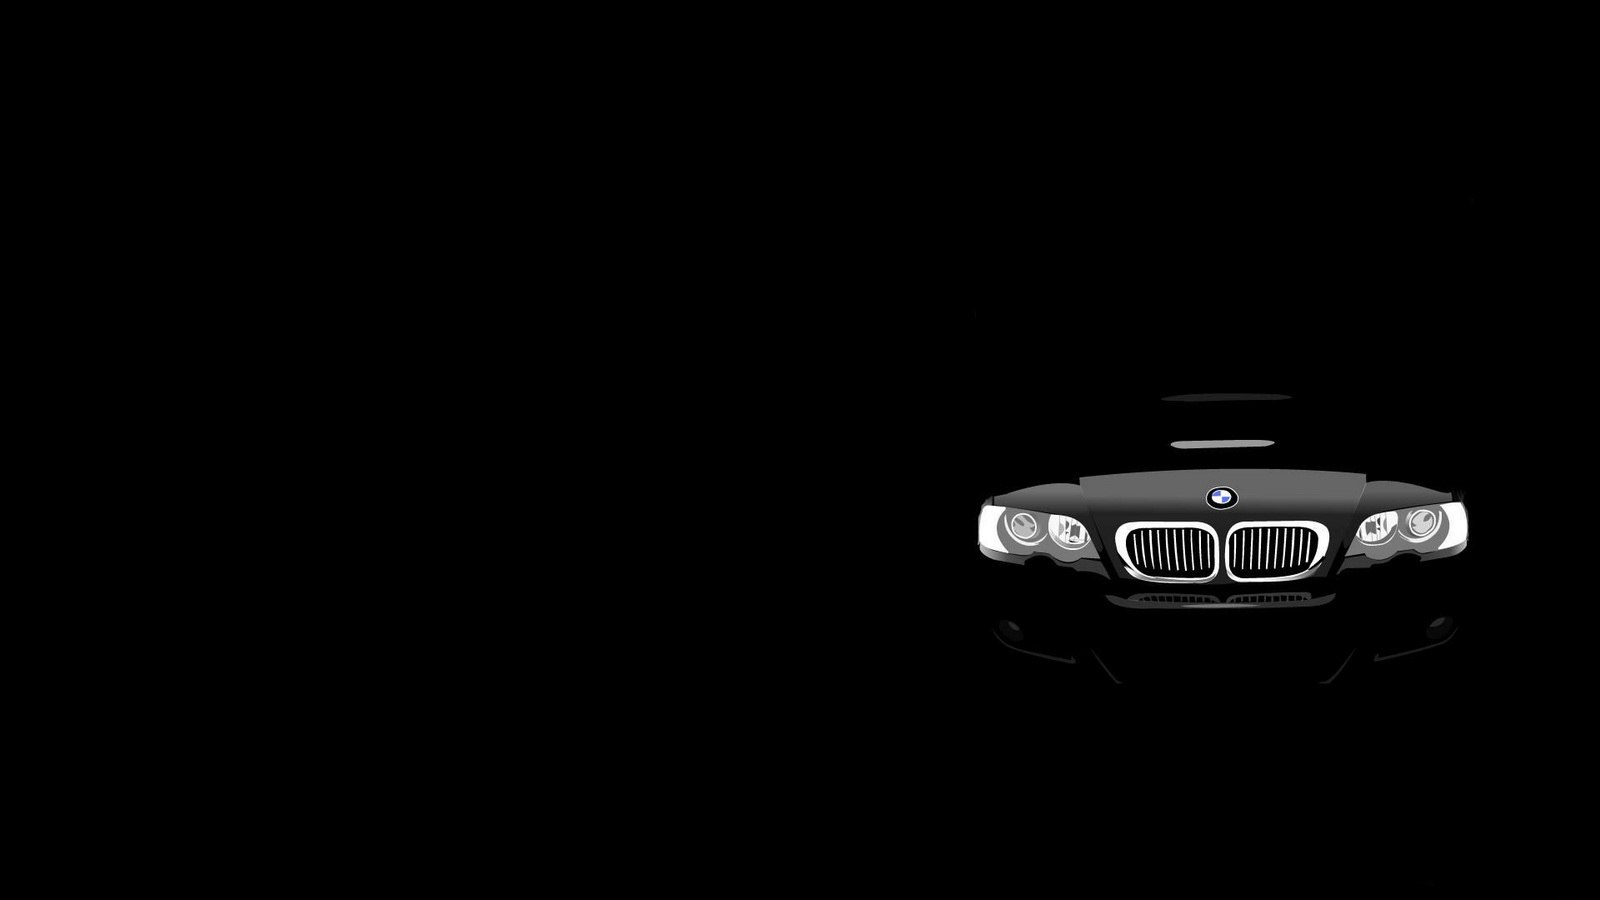 Best Hd Wallpapers For Tablets: Bmw Wallpaper Widescreen Hd